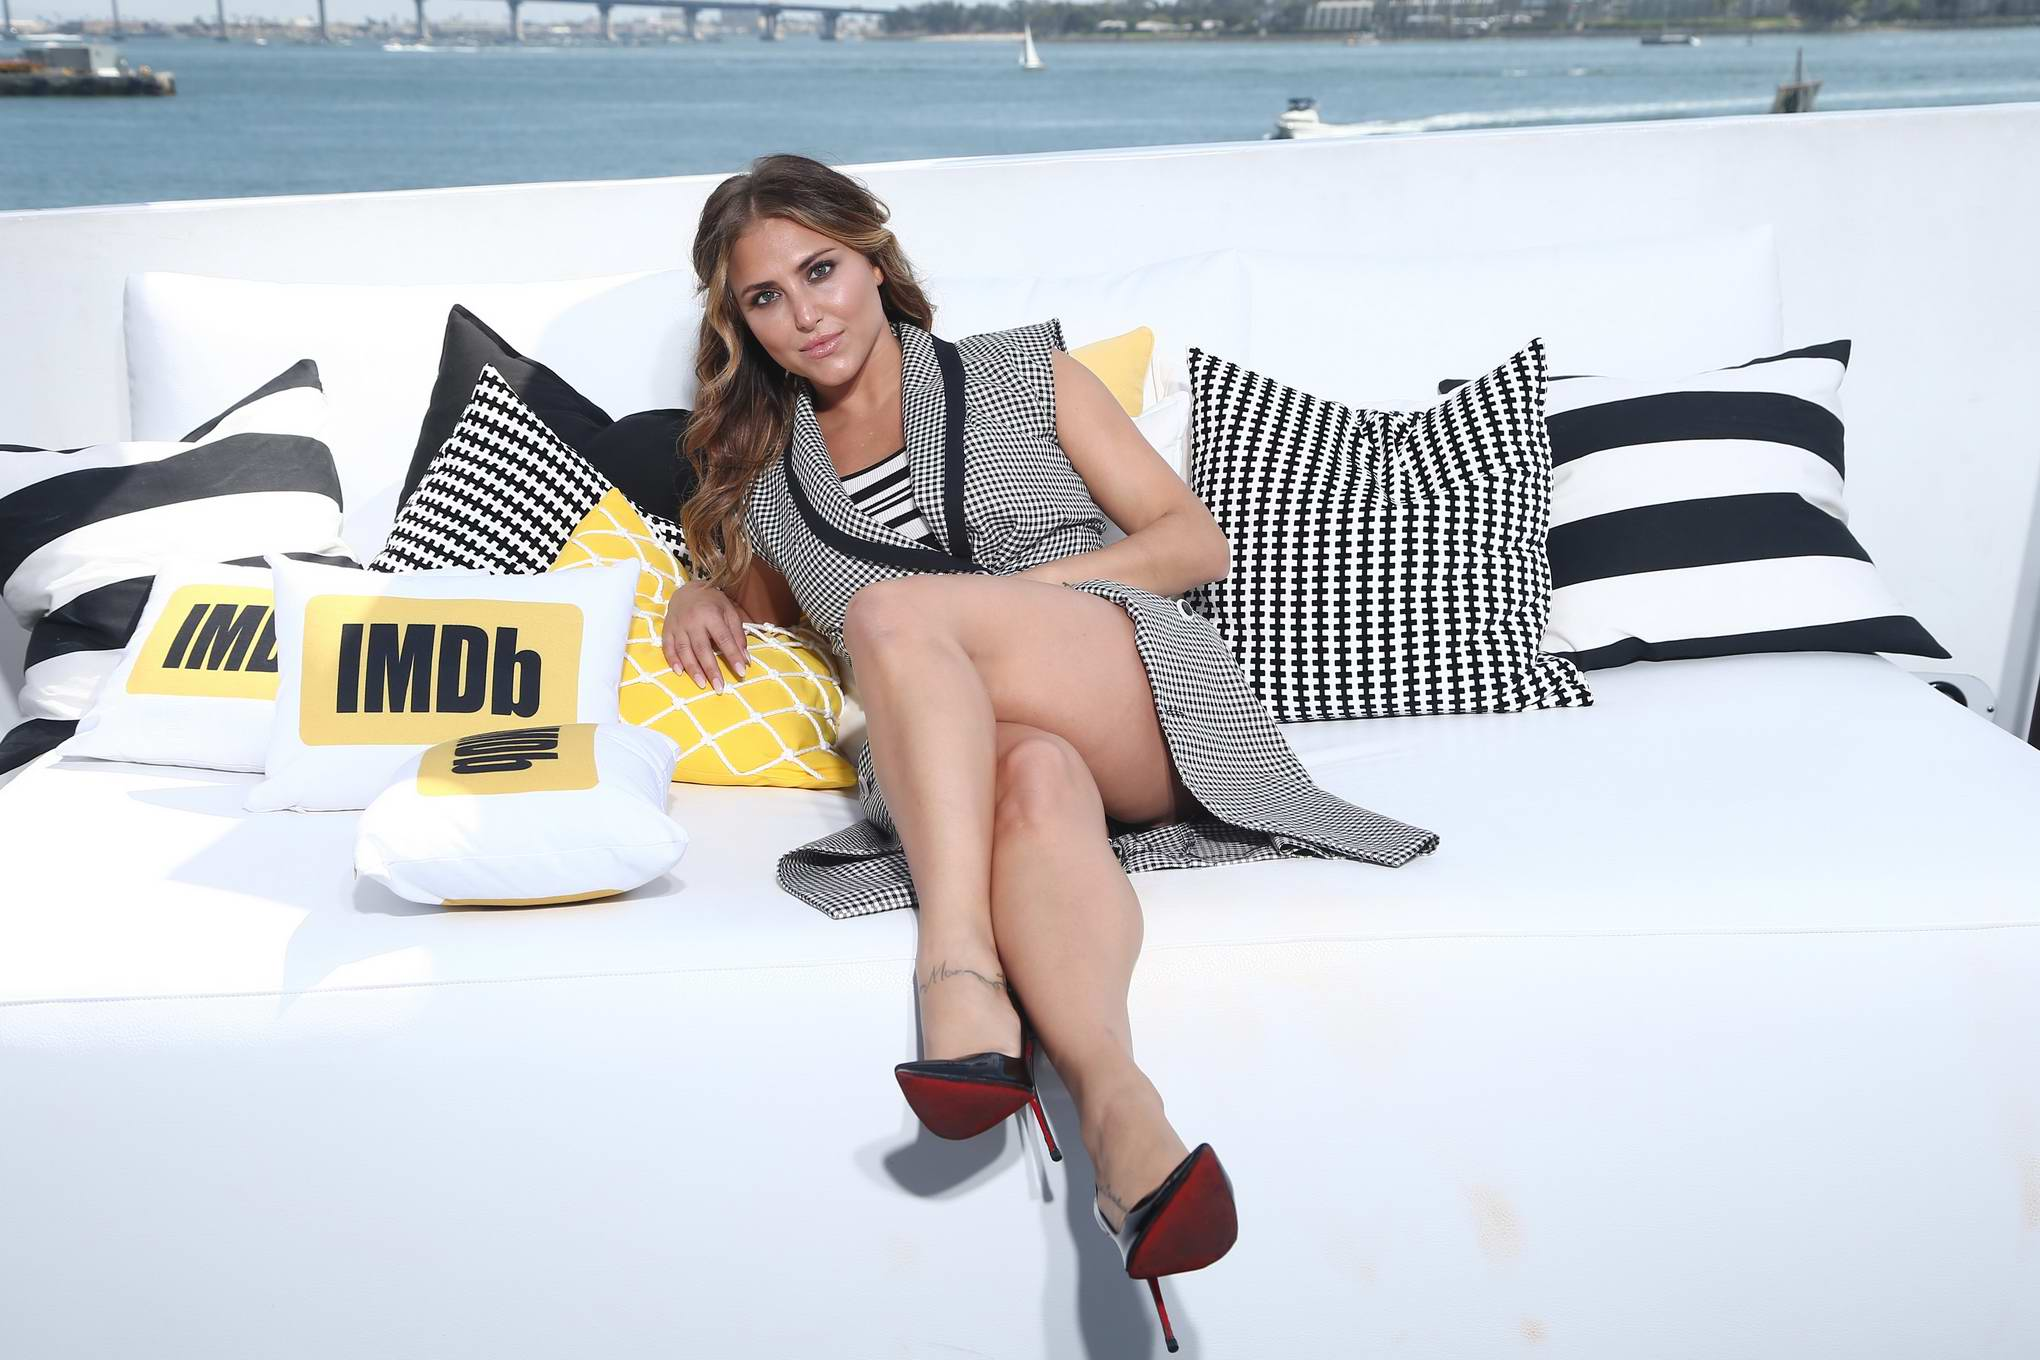 Cassie Scerbo at IMDBoat at Comic Con International 2017 in San Diego